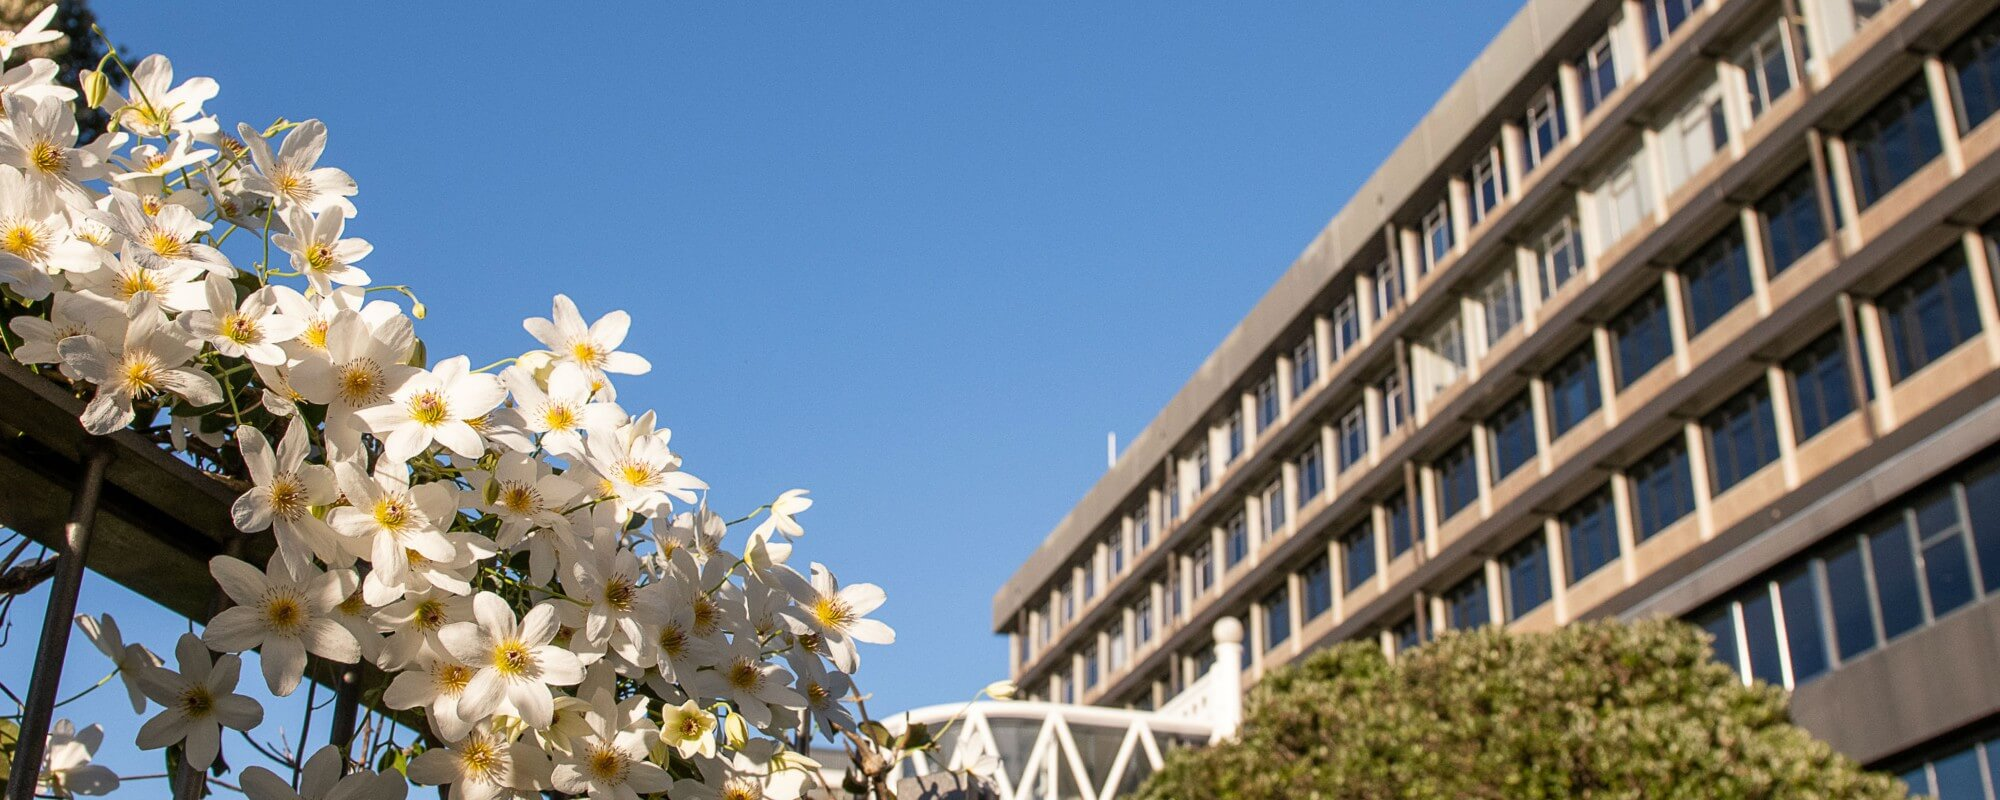 Side of Rankine Brown Library building with blue sky and white flowers in foreground